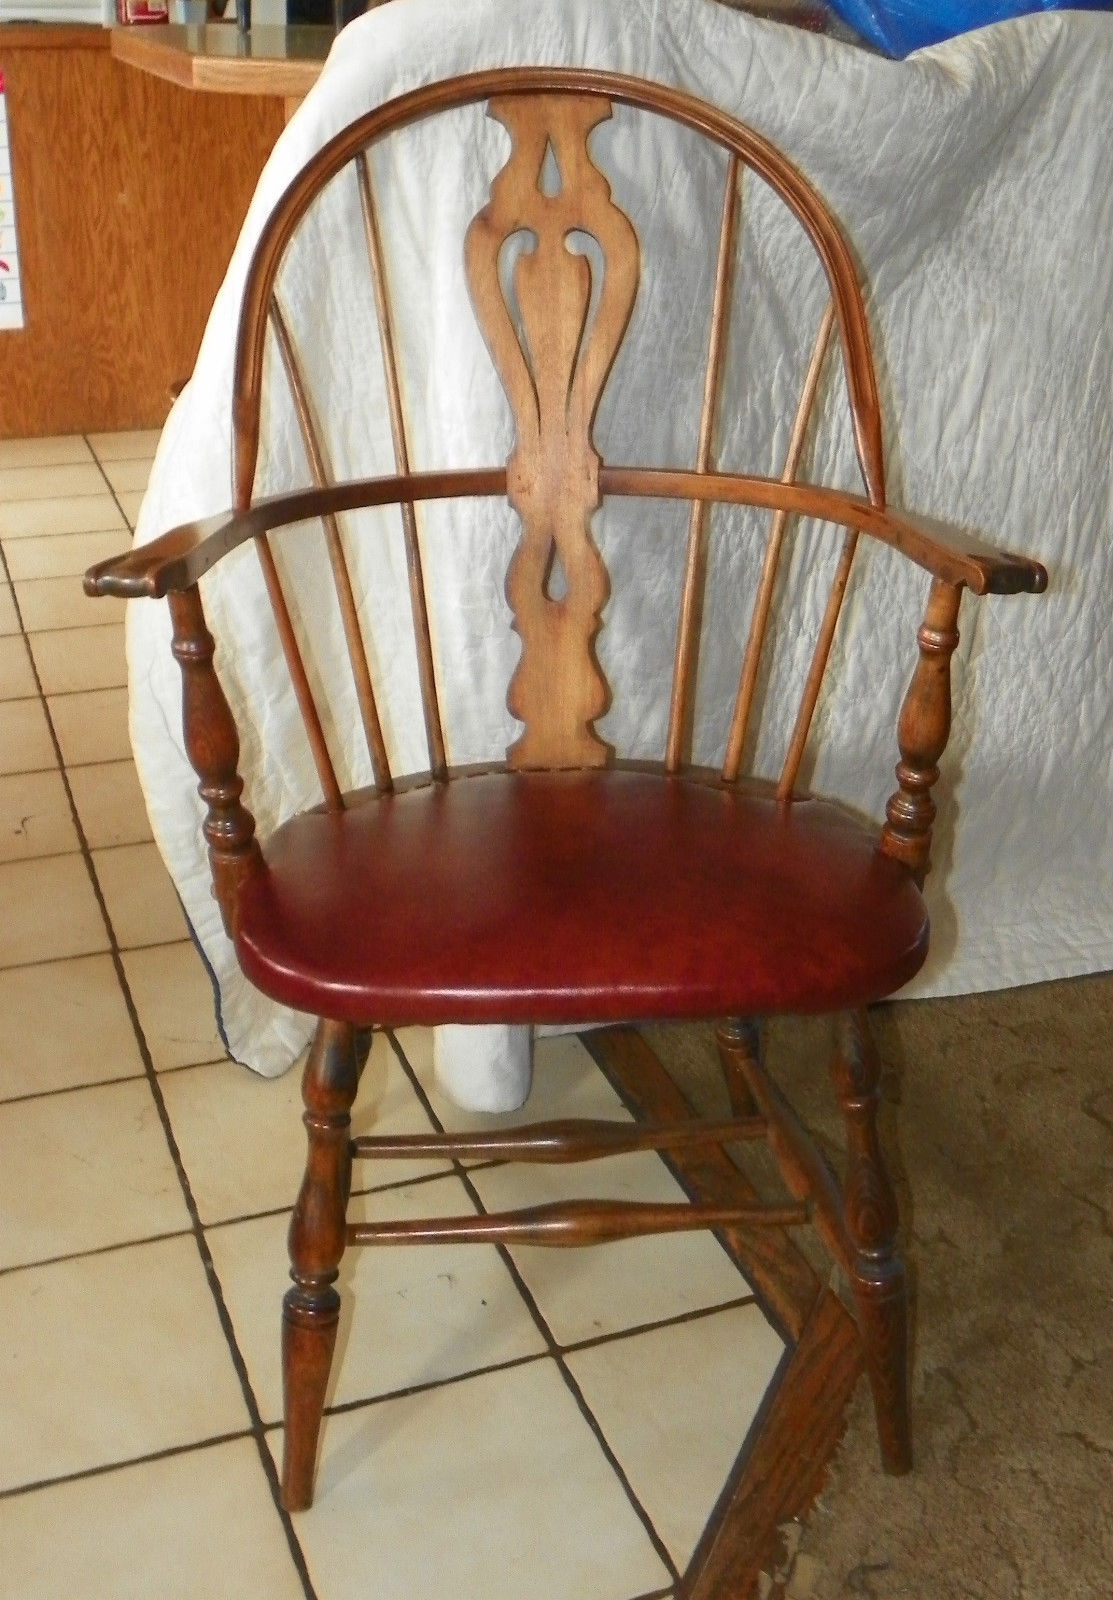 heywood wakefield chairs inexpensive outdoor oak and maple windsor armchair desk chair